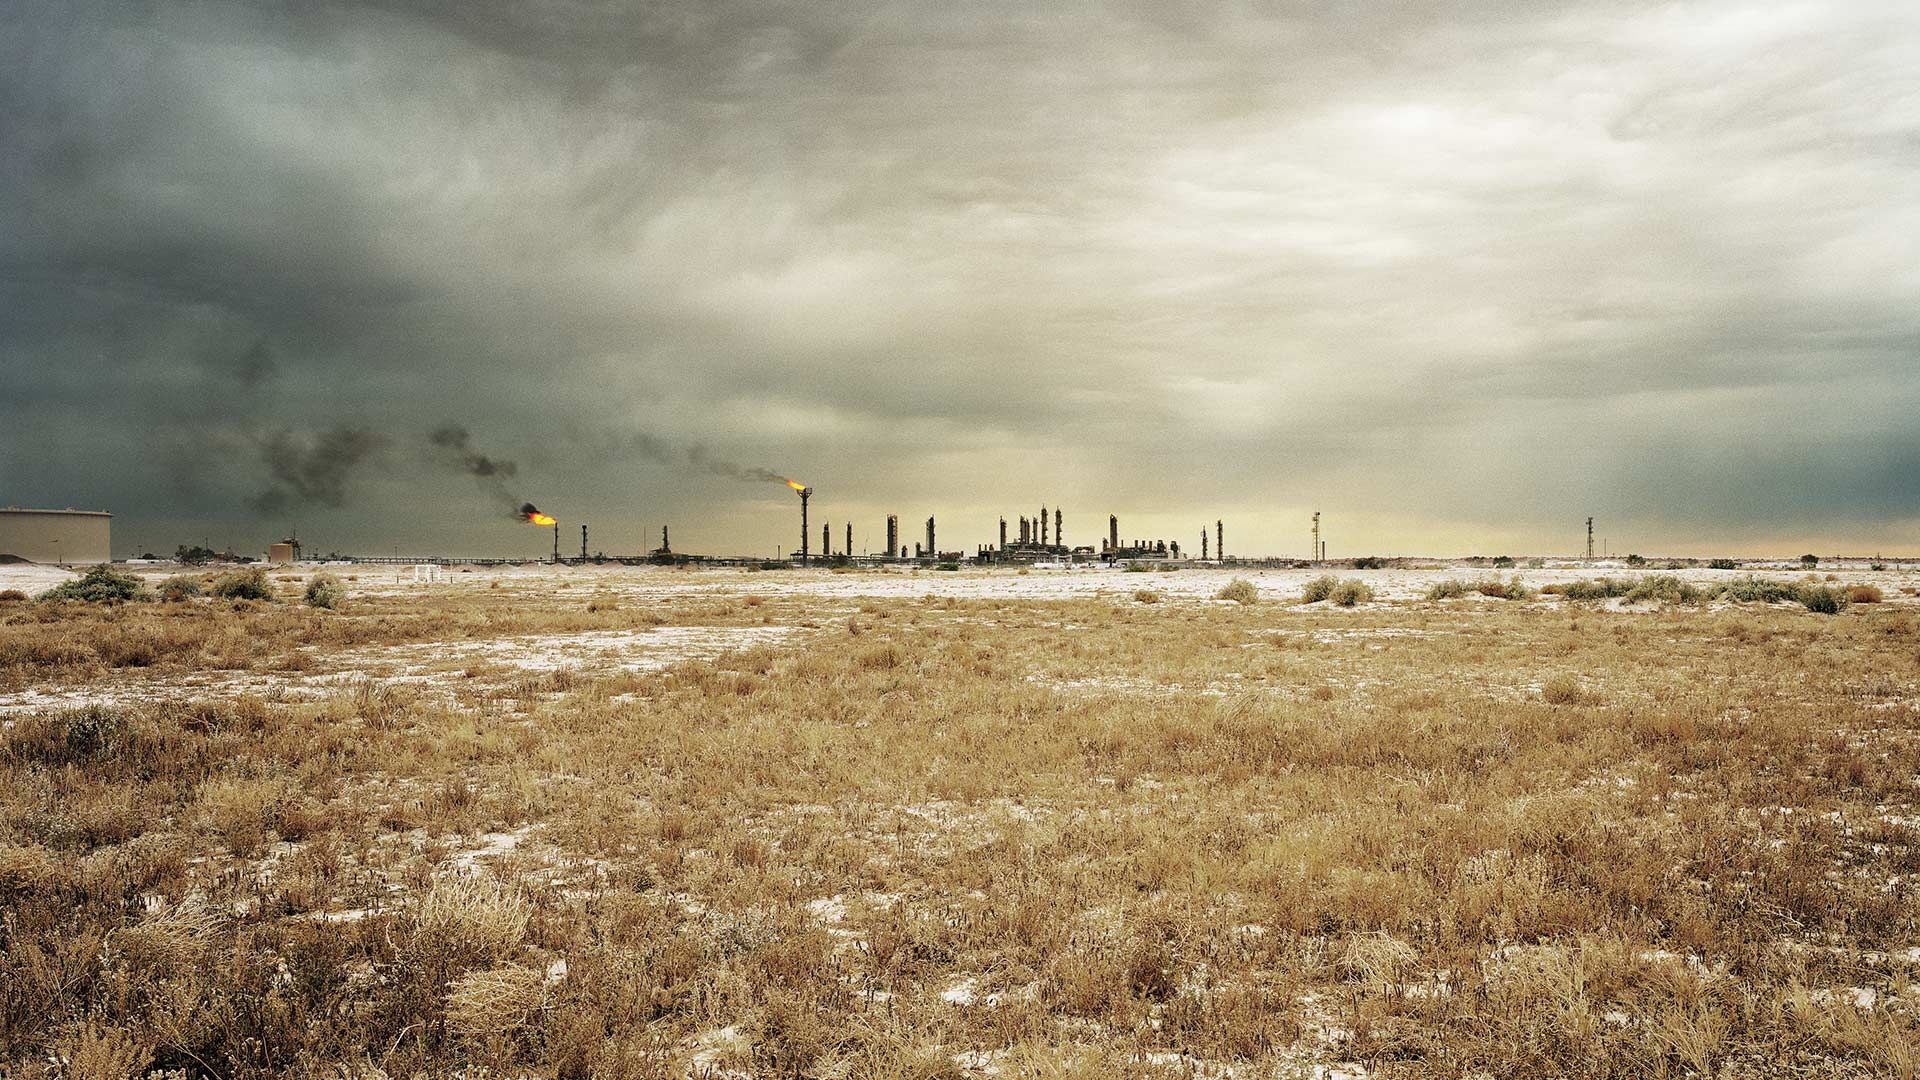 The great carbon capture and storage debate: can santos make it work?